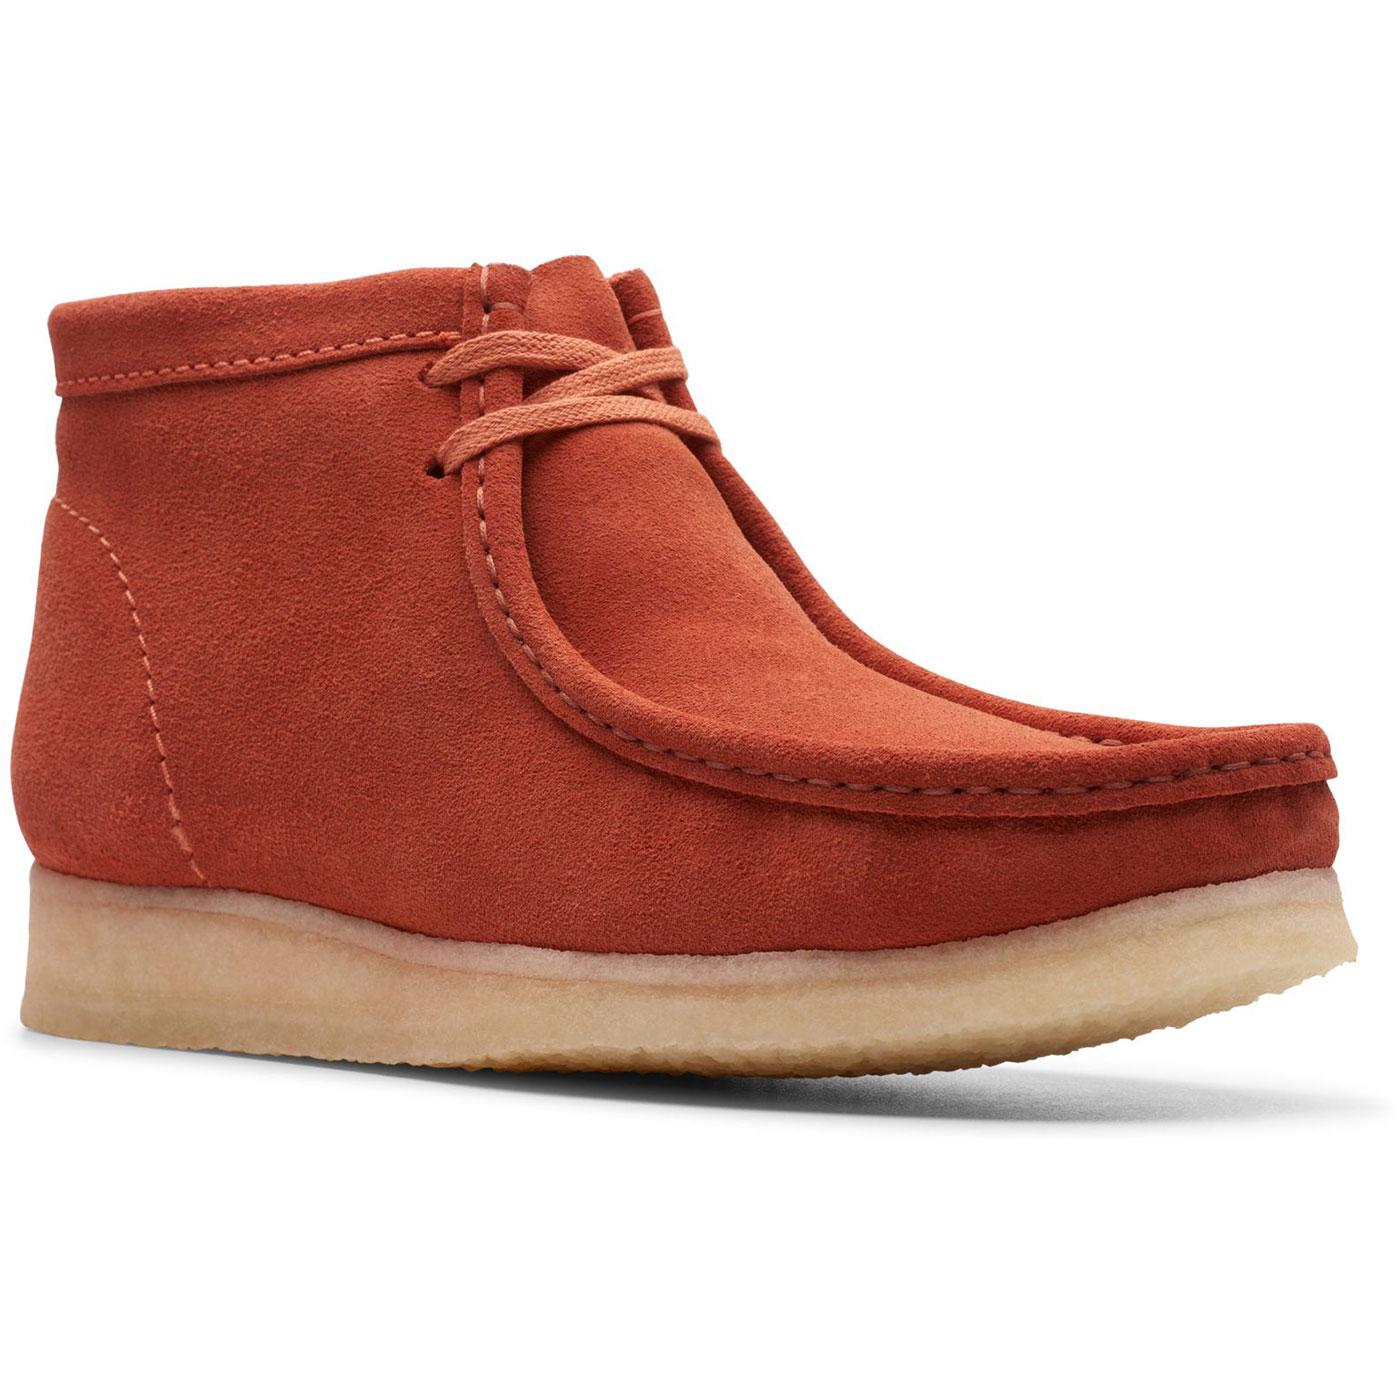 good looking high quality where to buy CLARKS ORIGINALS 'Wallabee' 60s Mod Suede Shoes Burnt Orange